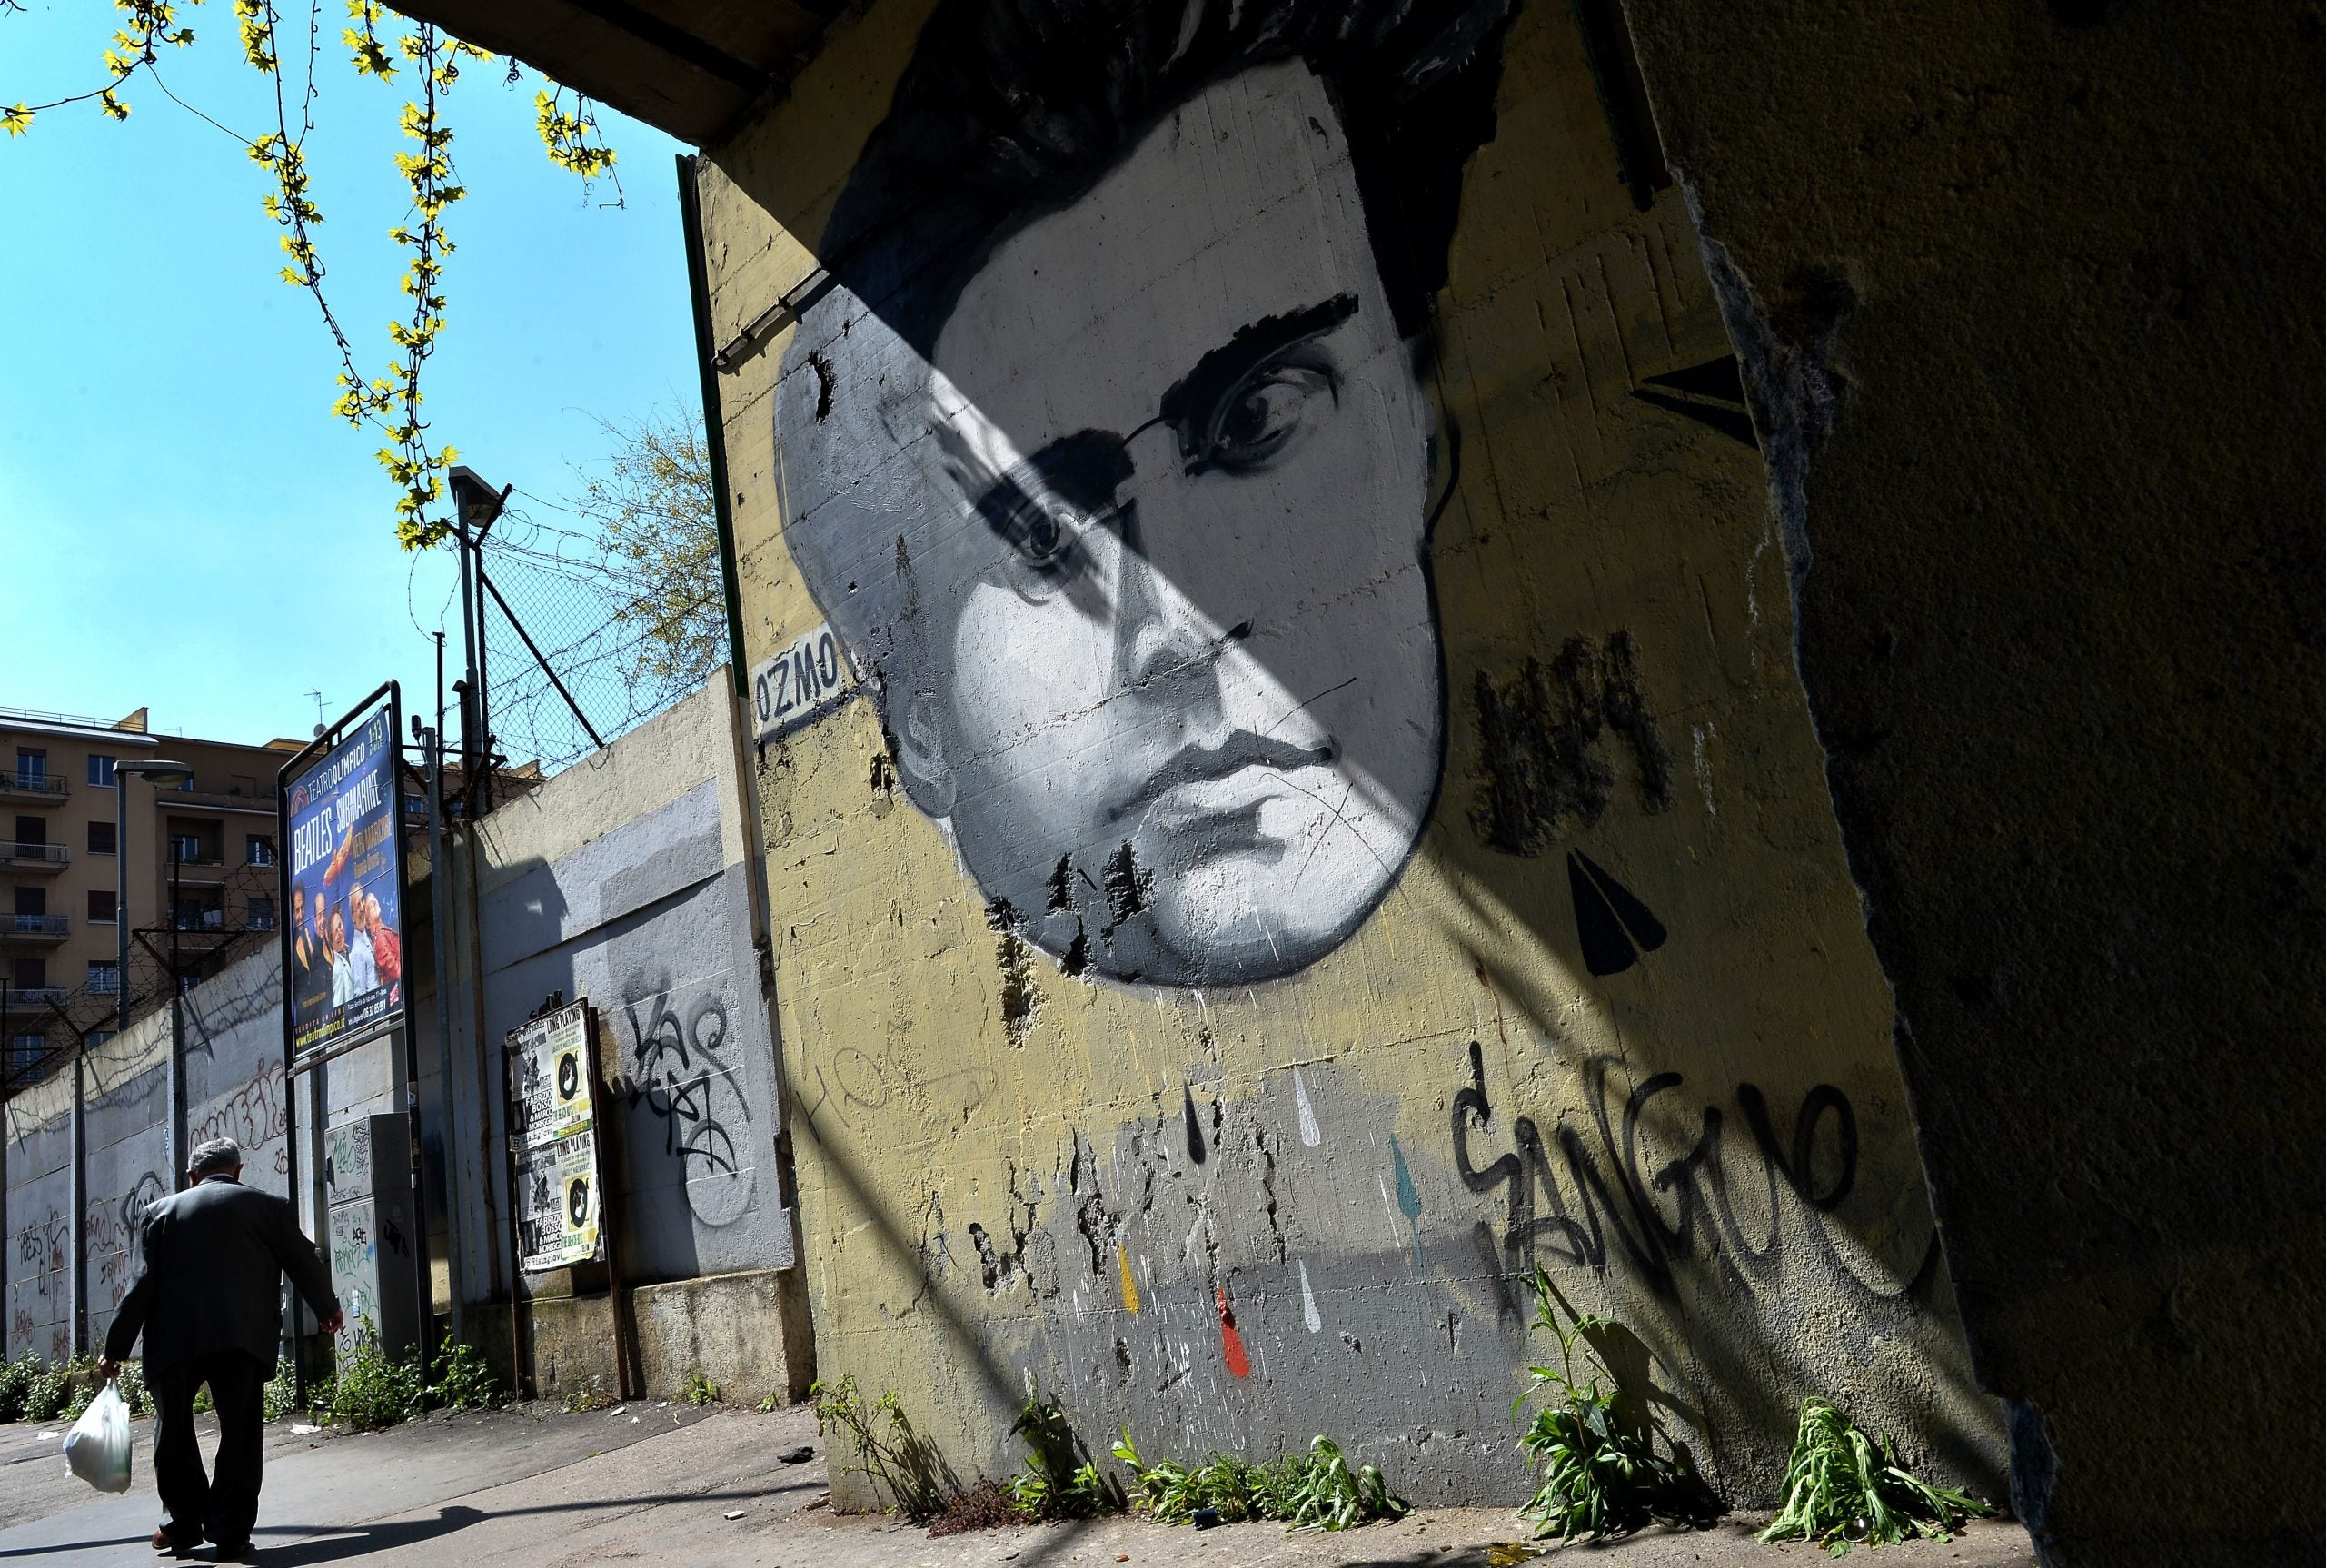 What Boris Johnson and the Tory right have learned from Antonio Gramsci